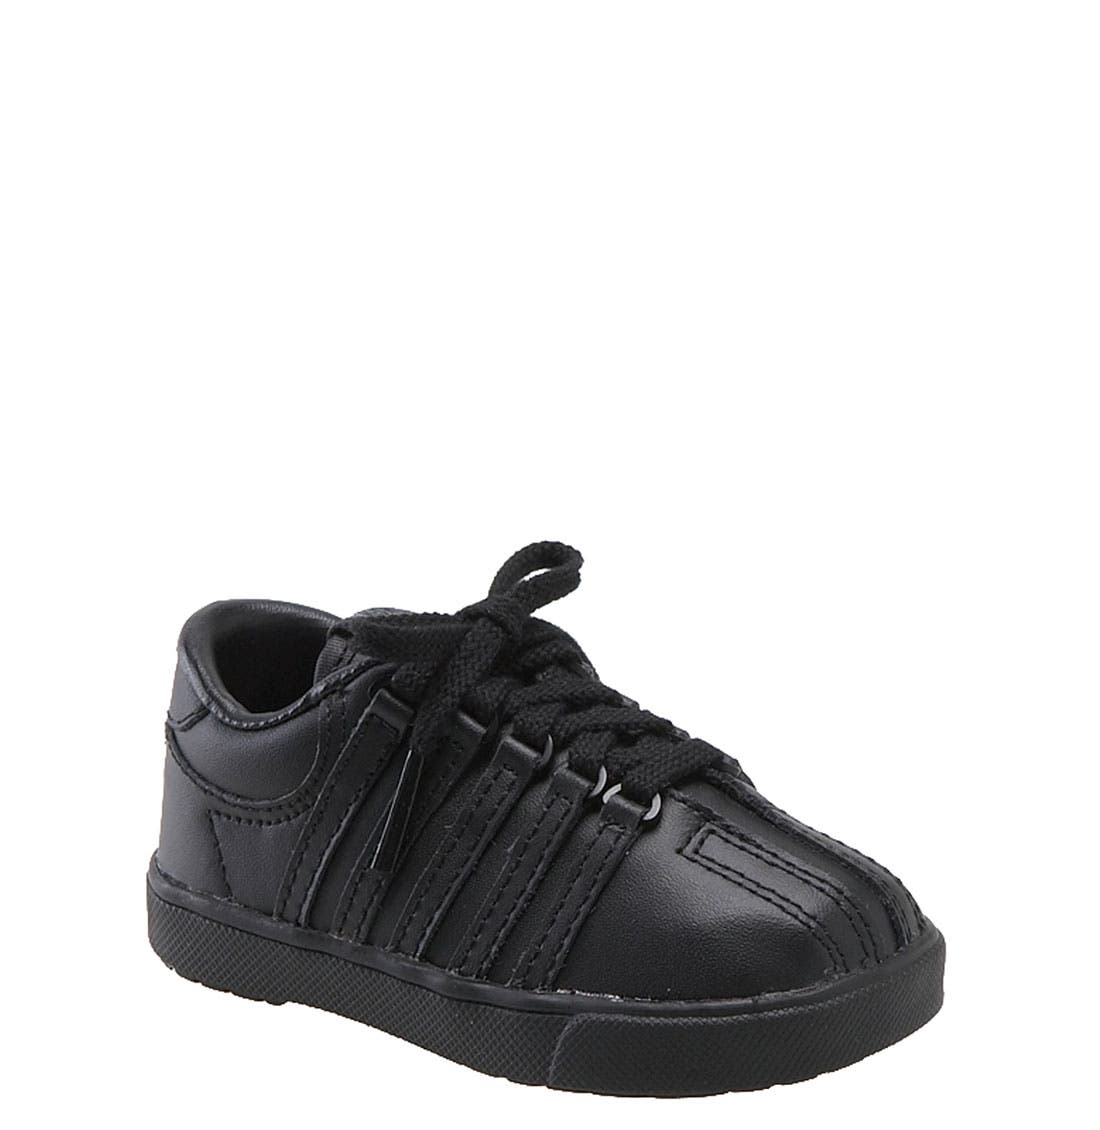 Alternate Image 1 Selected - K-Swiss Classic Sneaker (Baby, Walker & Toddler)